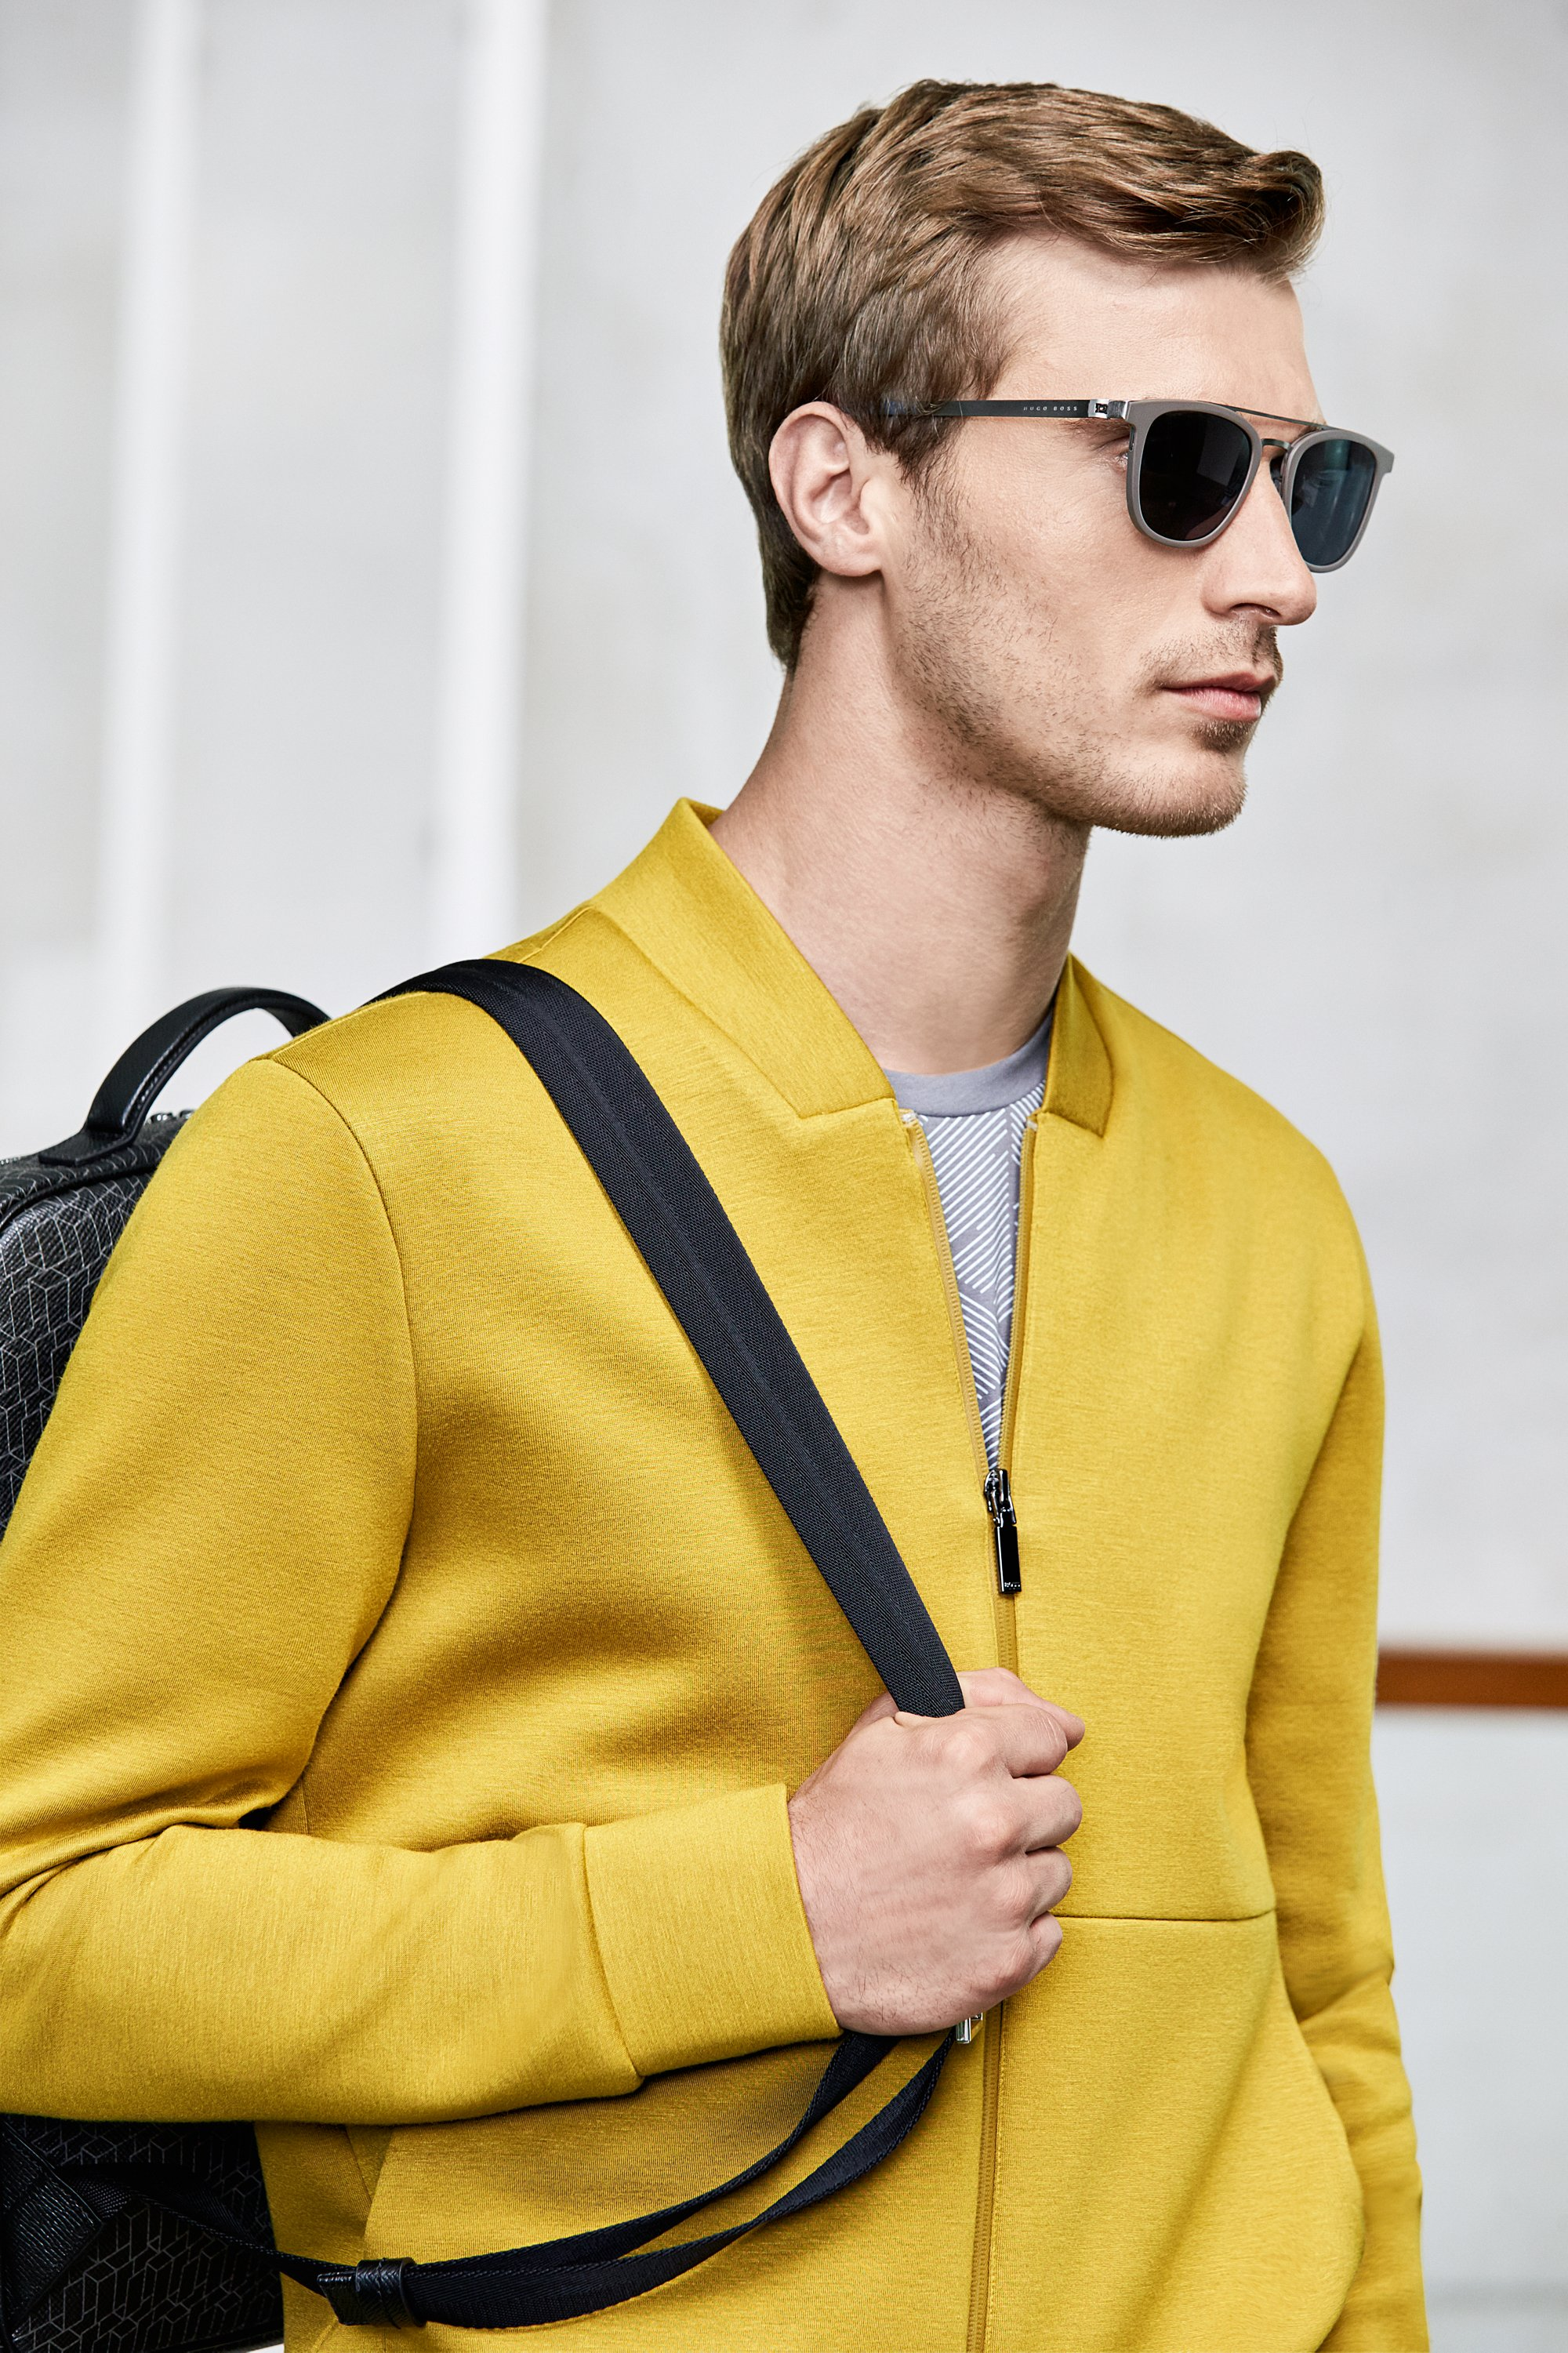 Grey suit over yellow knitwear and grey leather bag by BOSS